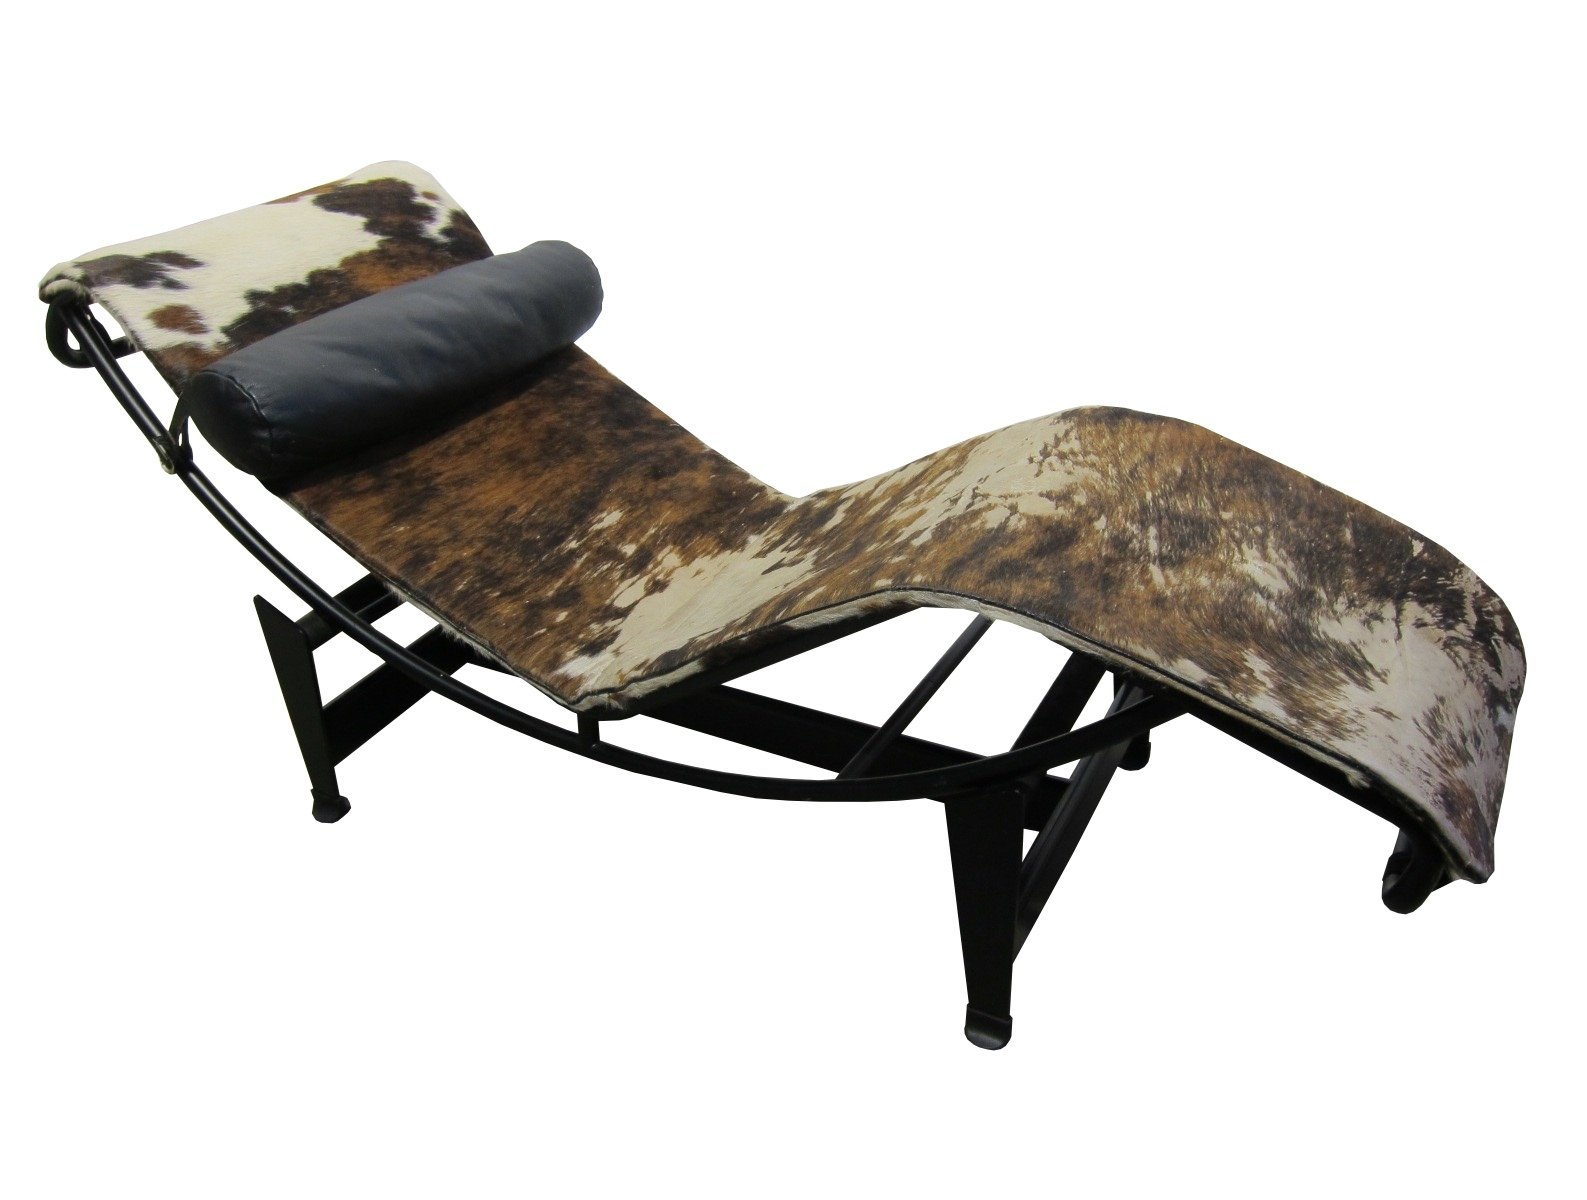 vintage lc4 39 chaise longue 39 in cowhide by le corbusier for cassina 1970s 75203. Black Bedroom Furniture Sets. Home Design Ideas